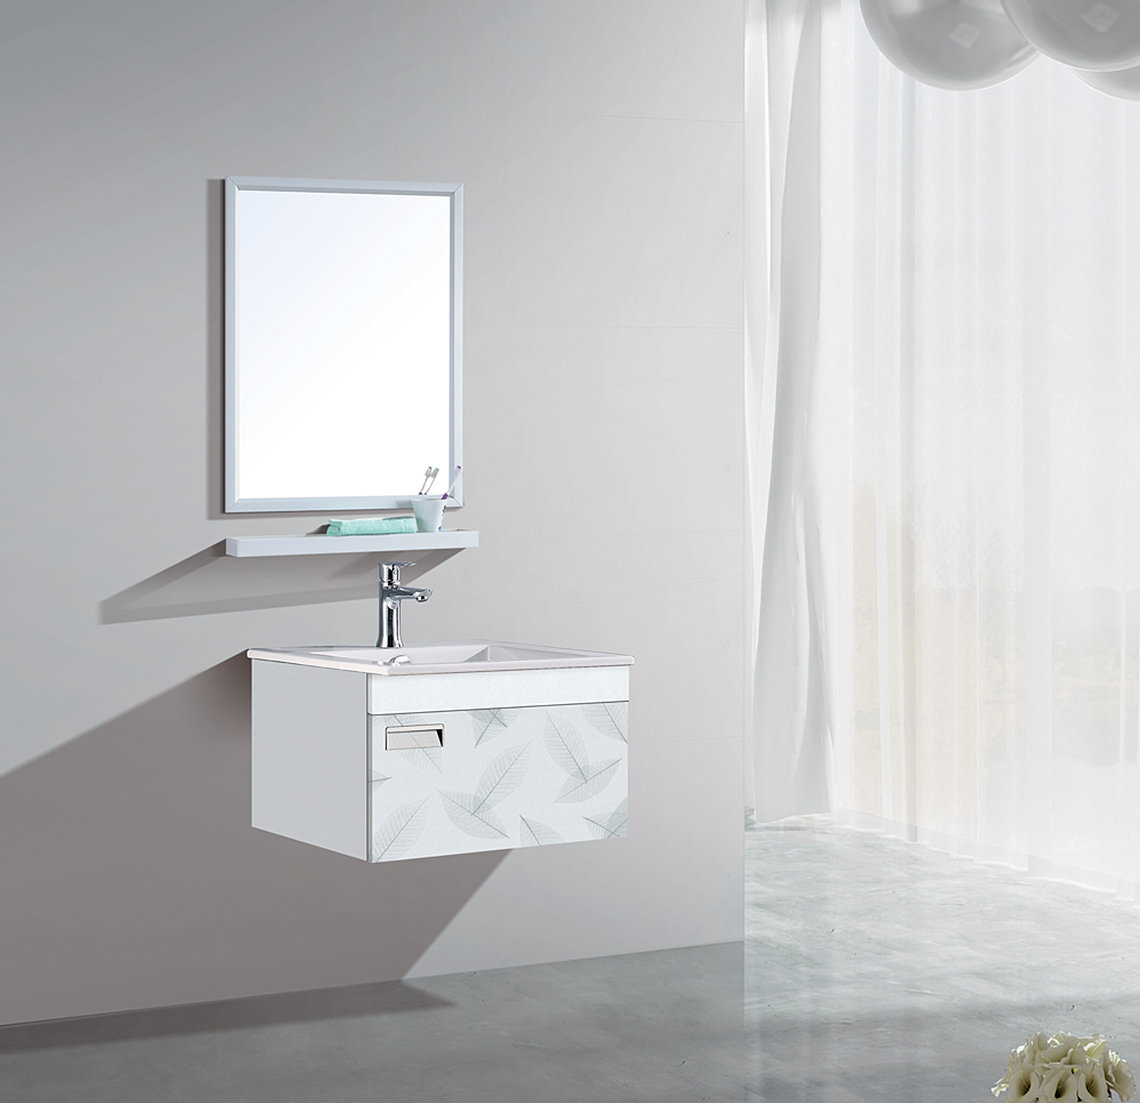 we provide options - Bathroom Accessories Malaysia